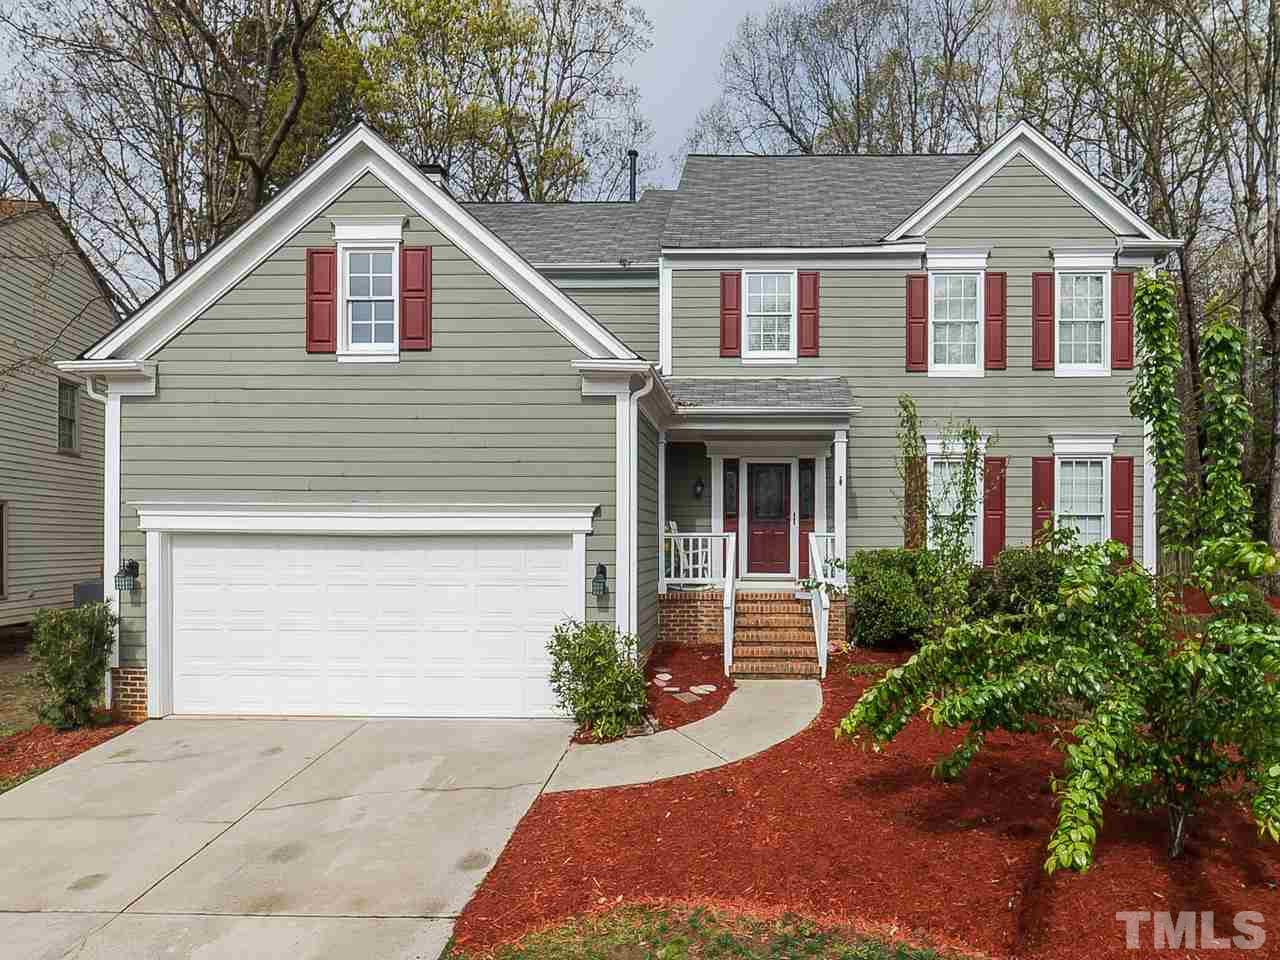 Beautifully Updated 5 Bedroom home in Lochmere w/spacious fenced yard! Remodeled Kitchen includes Granite, New Cabinetry, New Appliances & New Flooring on 1st Floor.  Master Bath Remodel w/ LARGE Oversized Shower, Dual Vanities & Updated Tile.  Recently Painted Interior(2019) & Exterior (2014). Third Floor offers Bonus + 5th Bedroom w/NEW carpeting!  HVAC (2018 - 1st &2nd))(2005 -3rd fl.) This is a community known for its private swim & tennis club + two lakes, fishing docks, biking & walking trails!